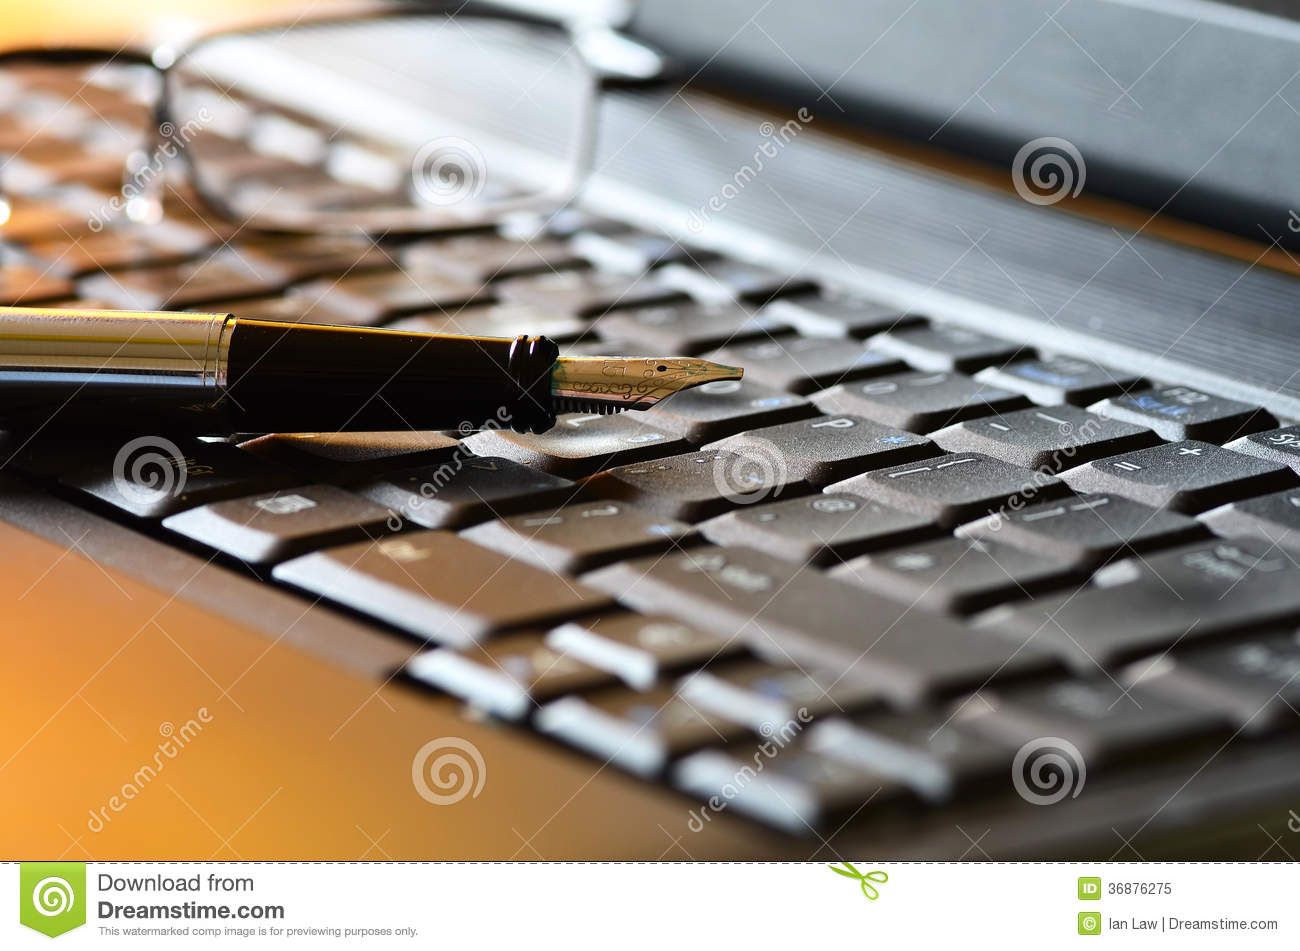 Pen and Reading glasses on a laptop